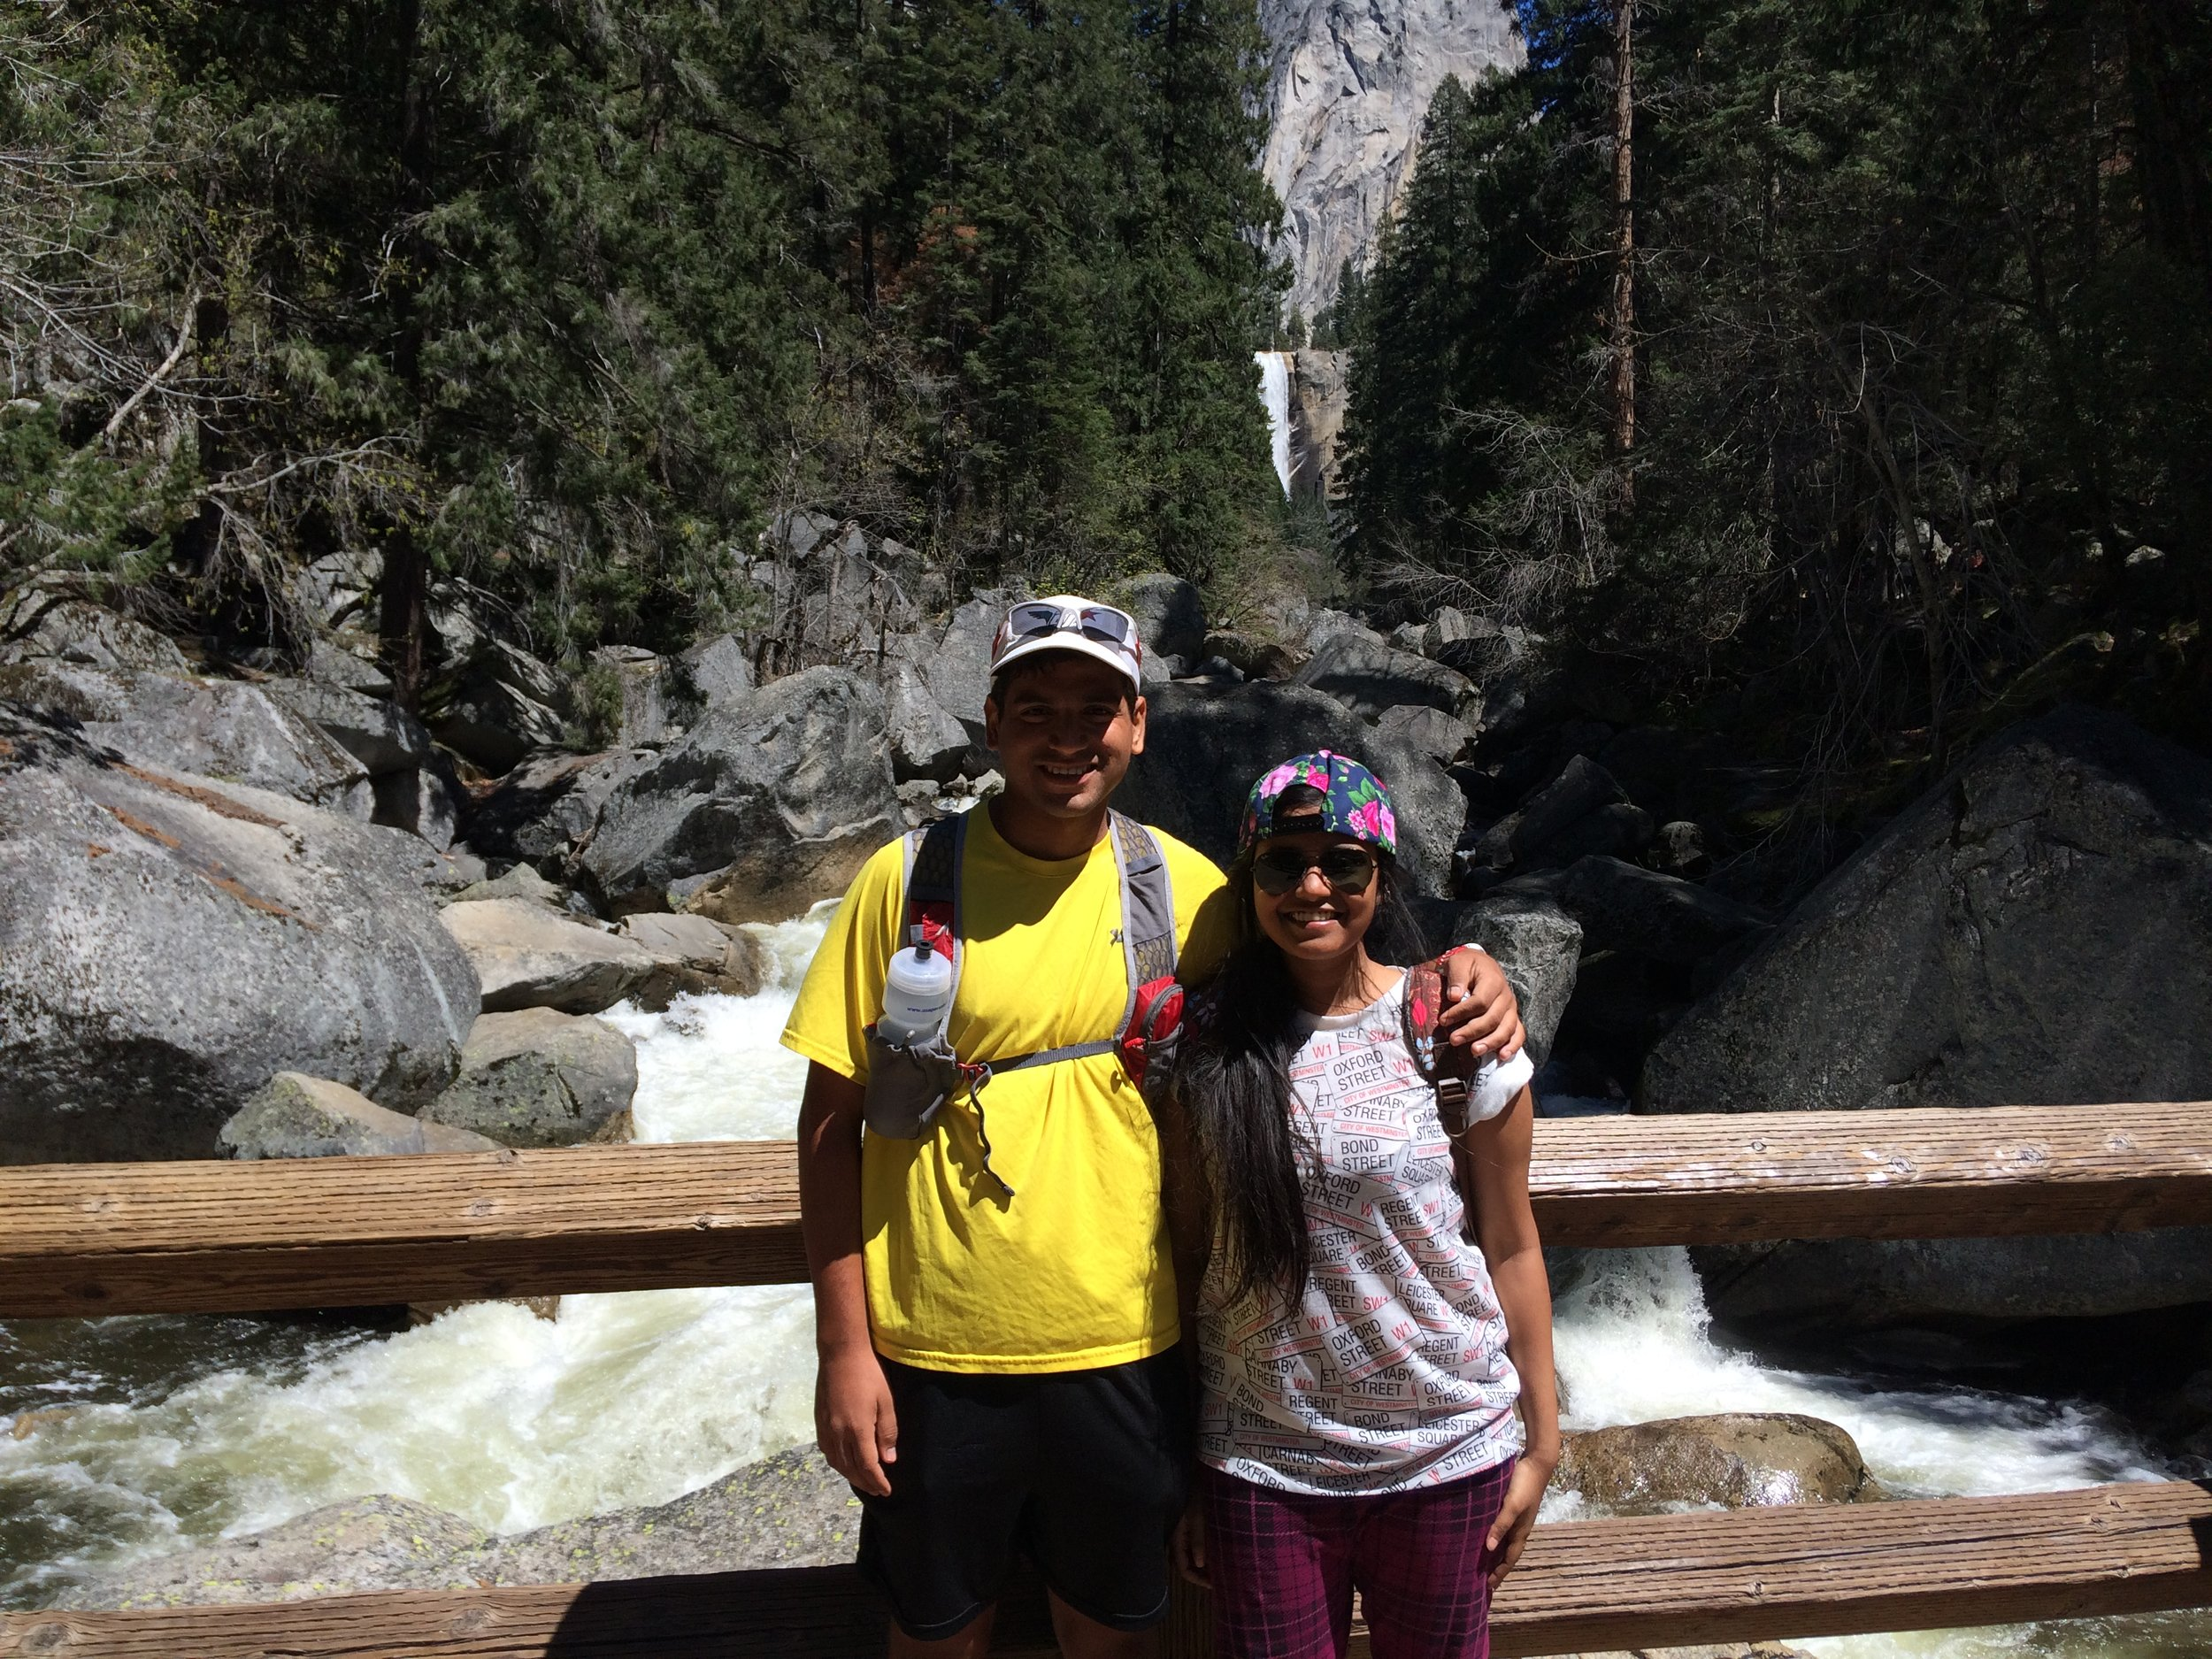 At Yosemite National Park, USA. A Tourist visa for Indians for the US costs USD 165. Based on the discretion of the immigration officer, you might just score a 10 year visa. So, it sure becomes value for money. However, a 10 year UK tourist visa costs USD 1100. Ouch. (Of course the US visa is only valid for 3 months max)